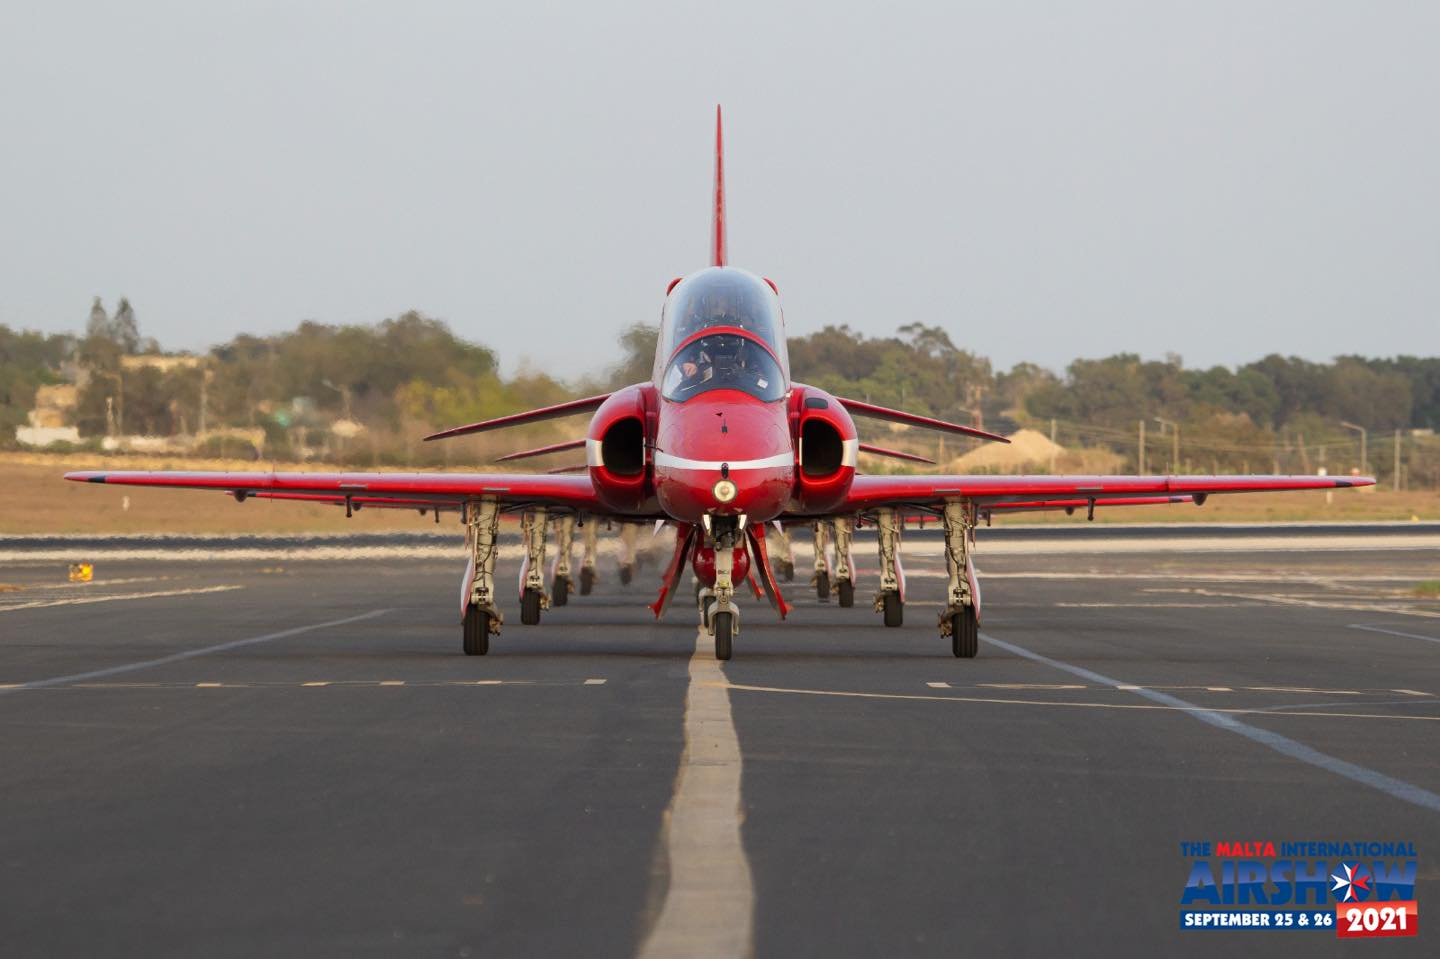 Crowds awed by Red Arrows' return to Malta Air Show